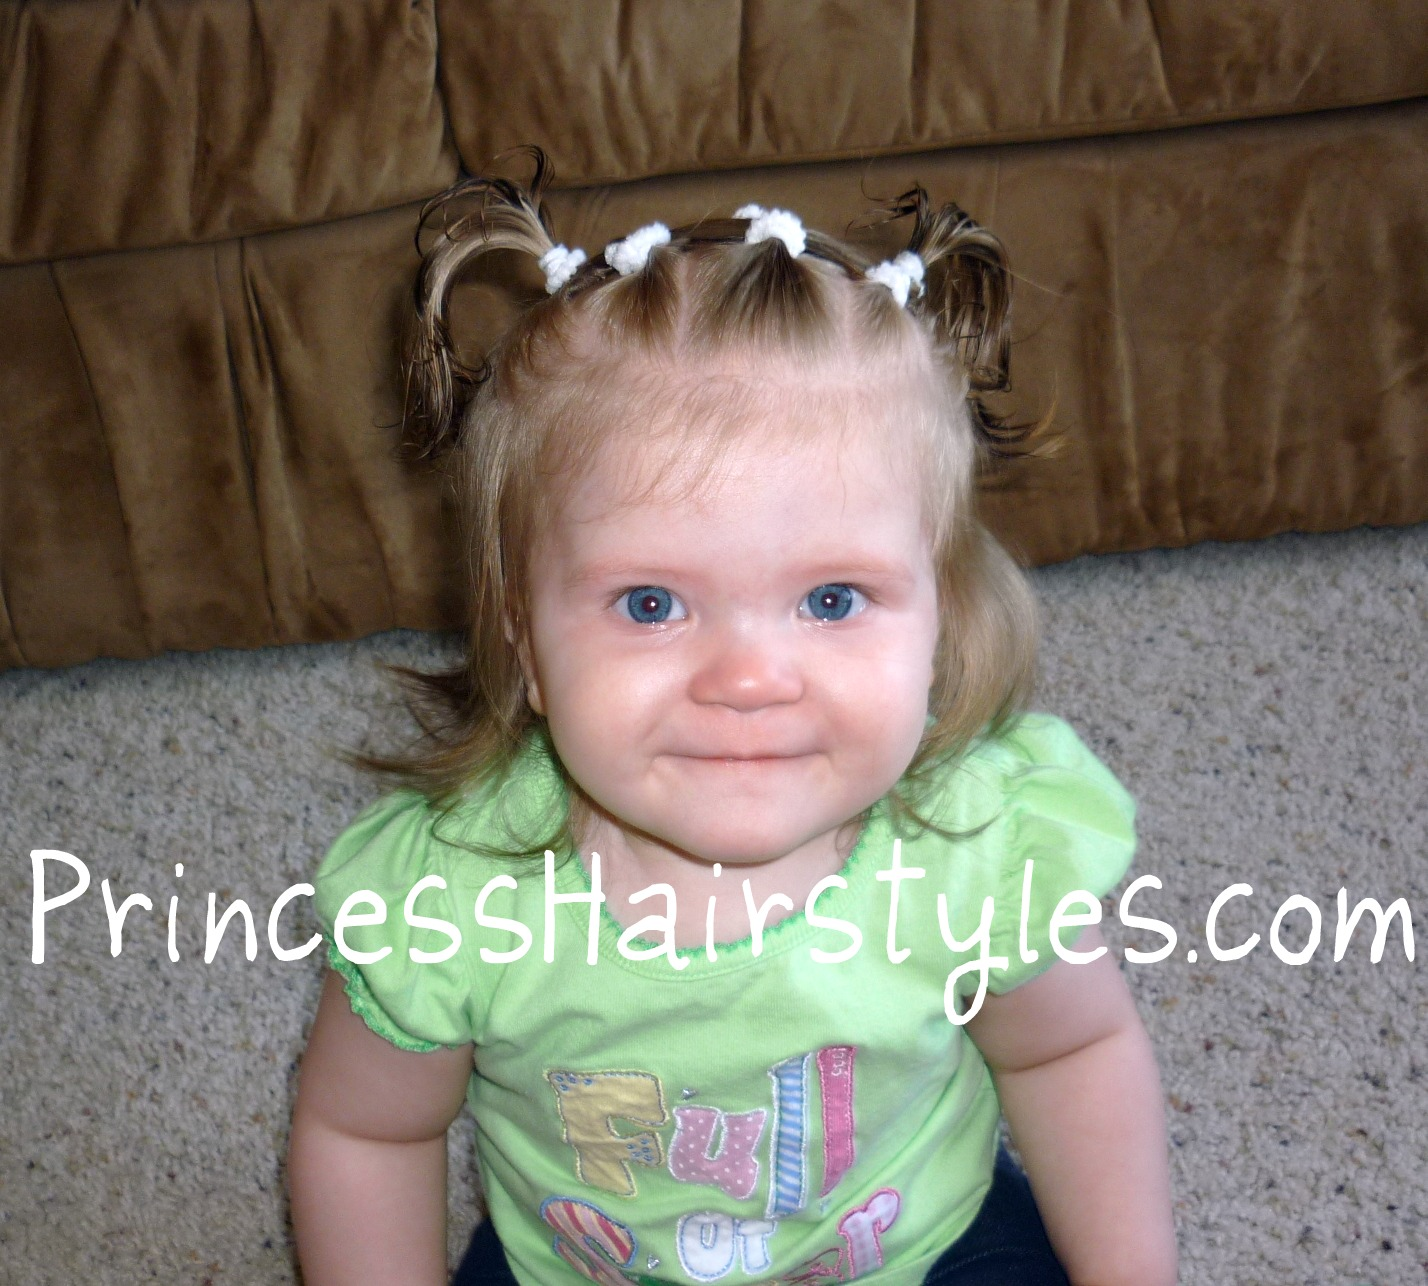 chiffel weblogs: we39;ll have another baby hairstyle ready